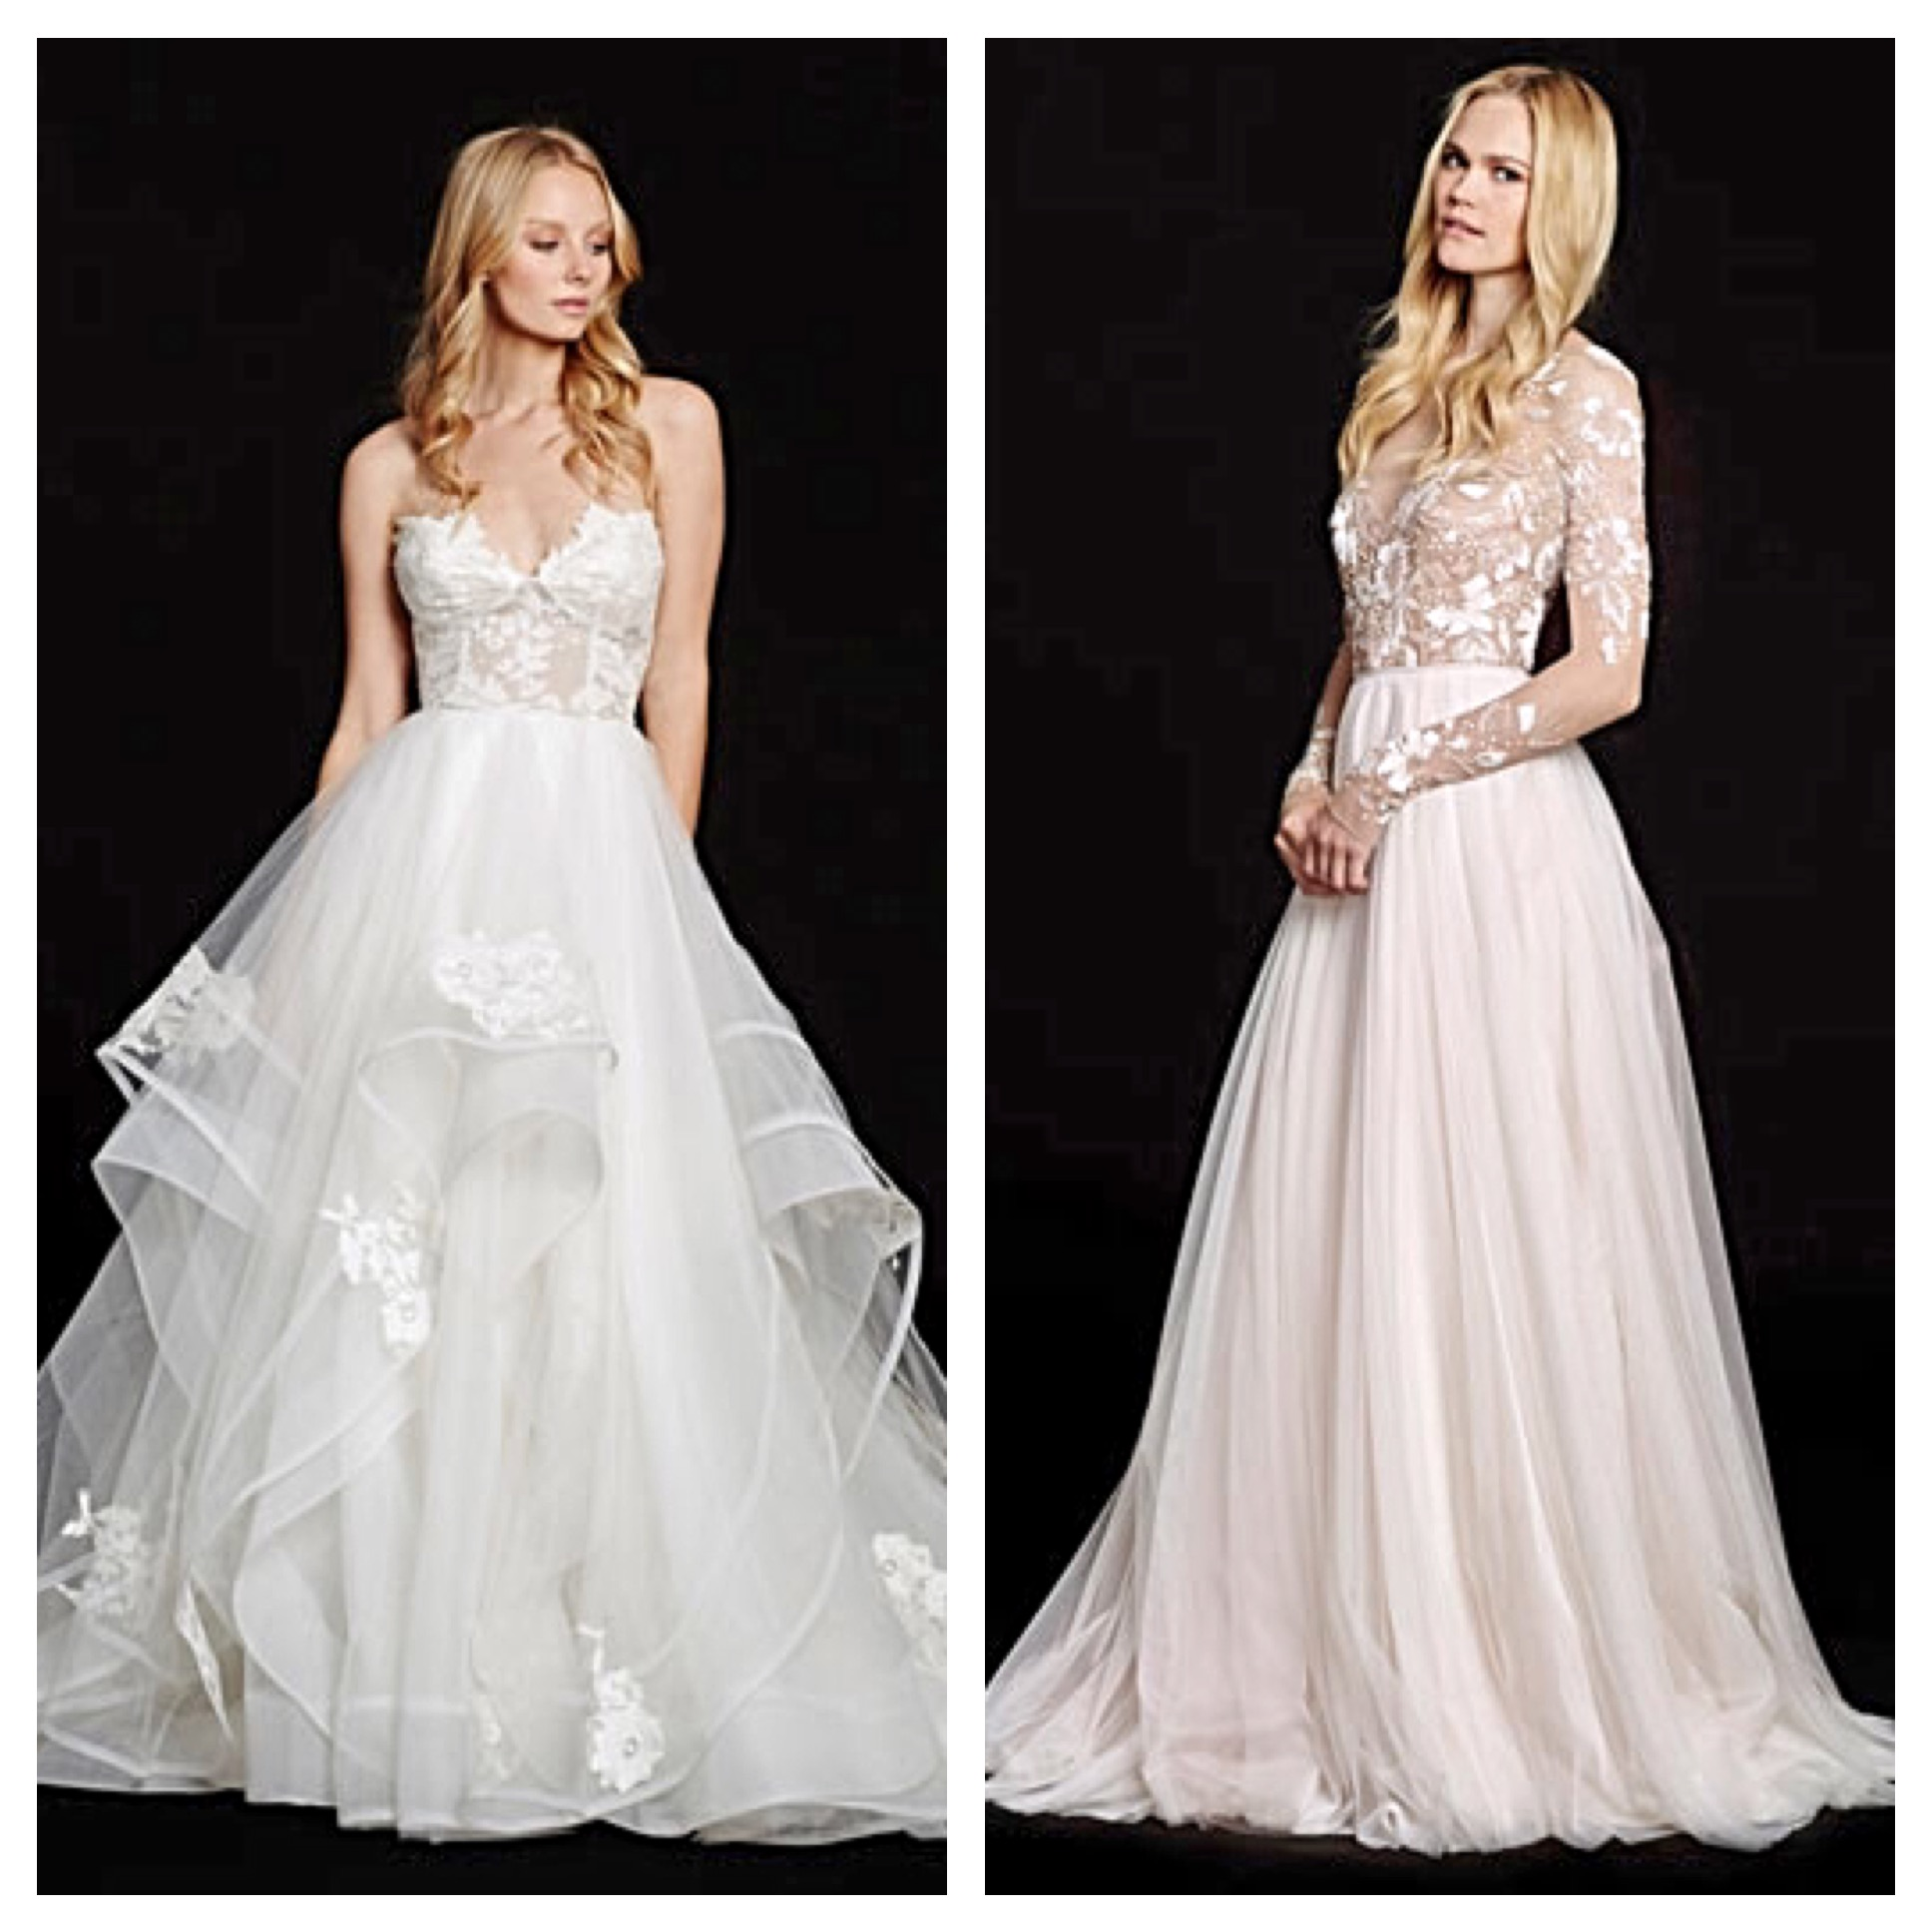 hayley paige bridal hayley paige wedding dress Left Enchanting Chantelle Right Radiant Remmington